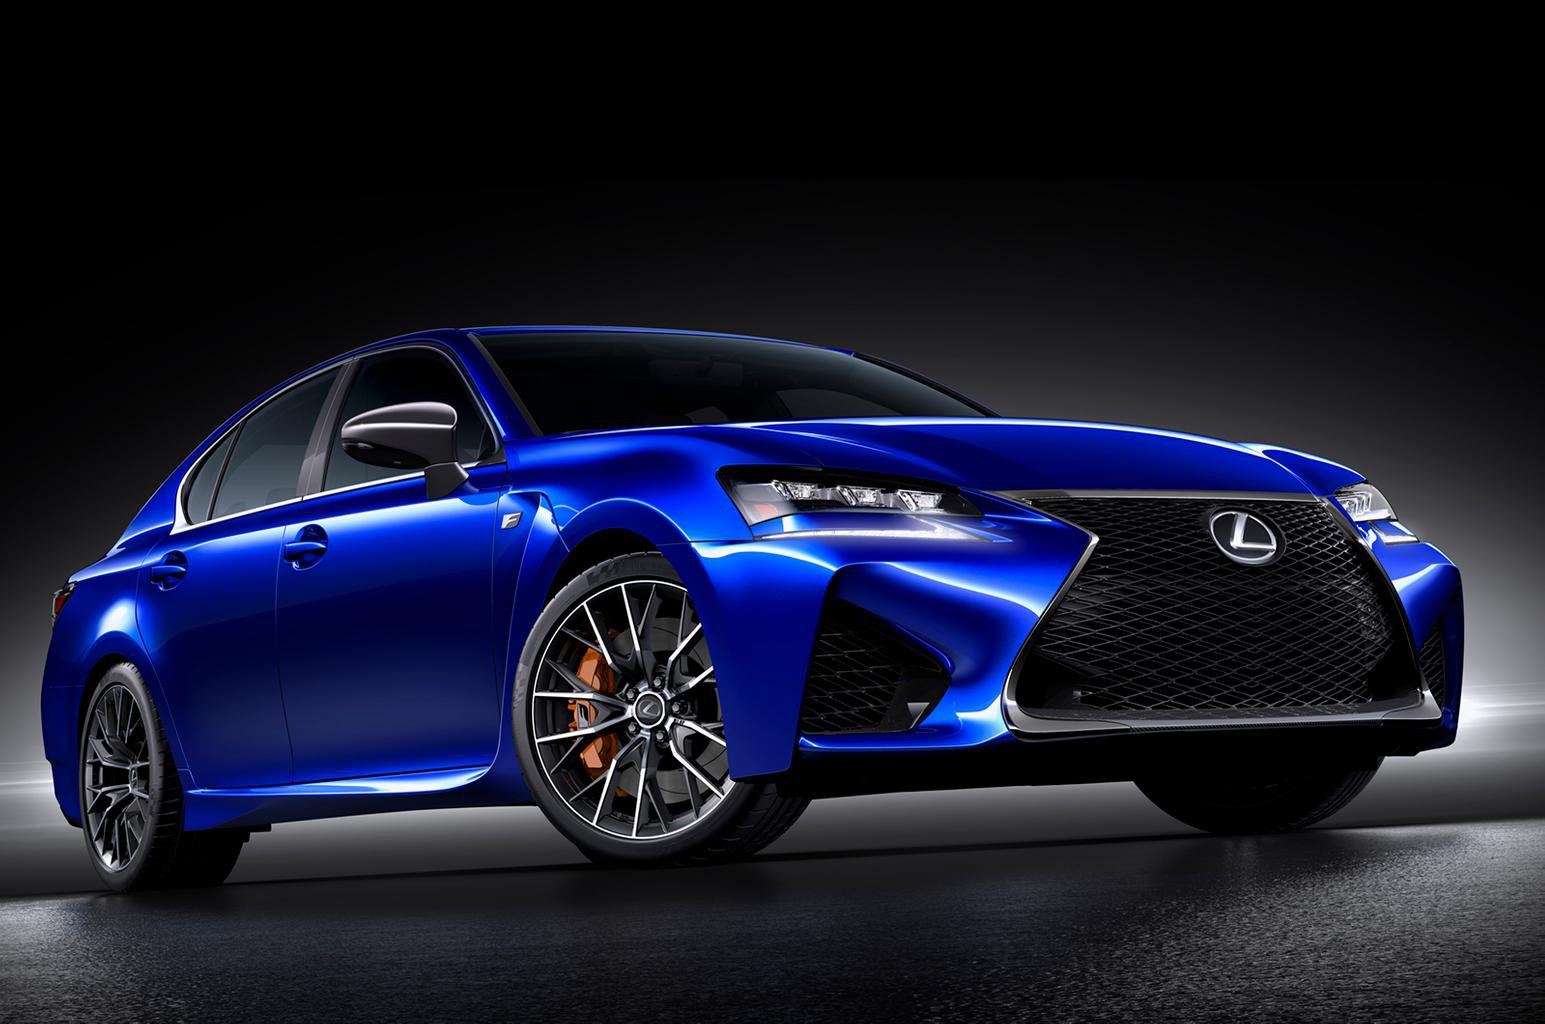 New 2015 Lexus GS-F - first pictures and spec